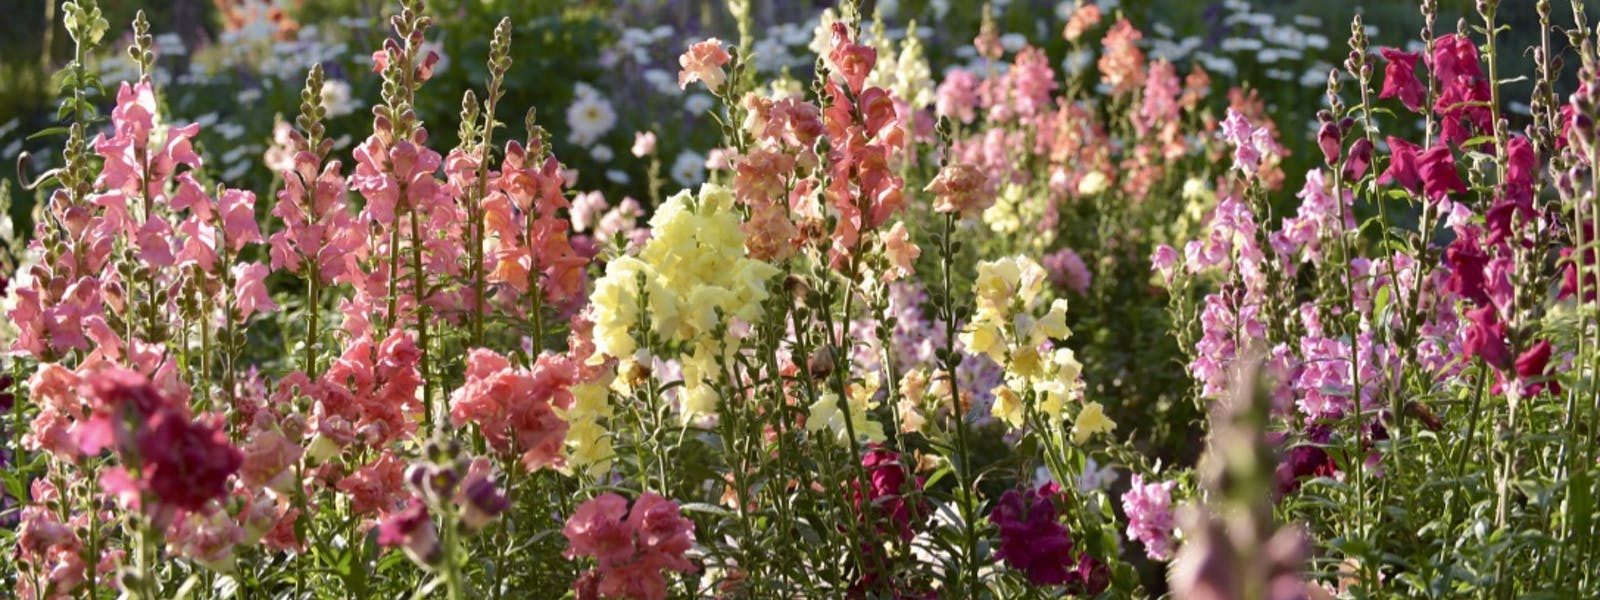 We love our snapdragon flowers!